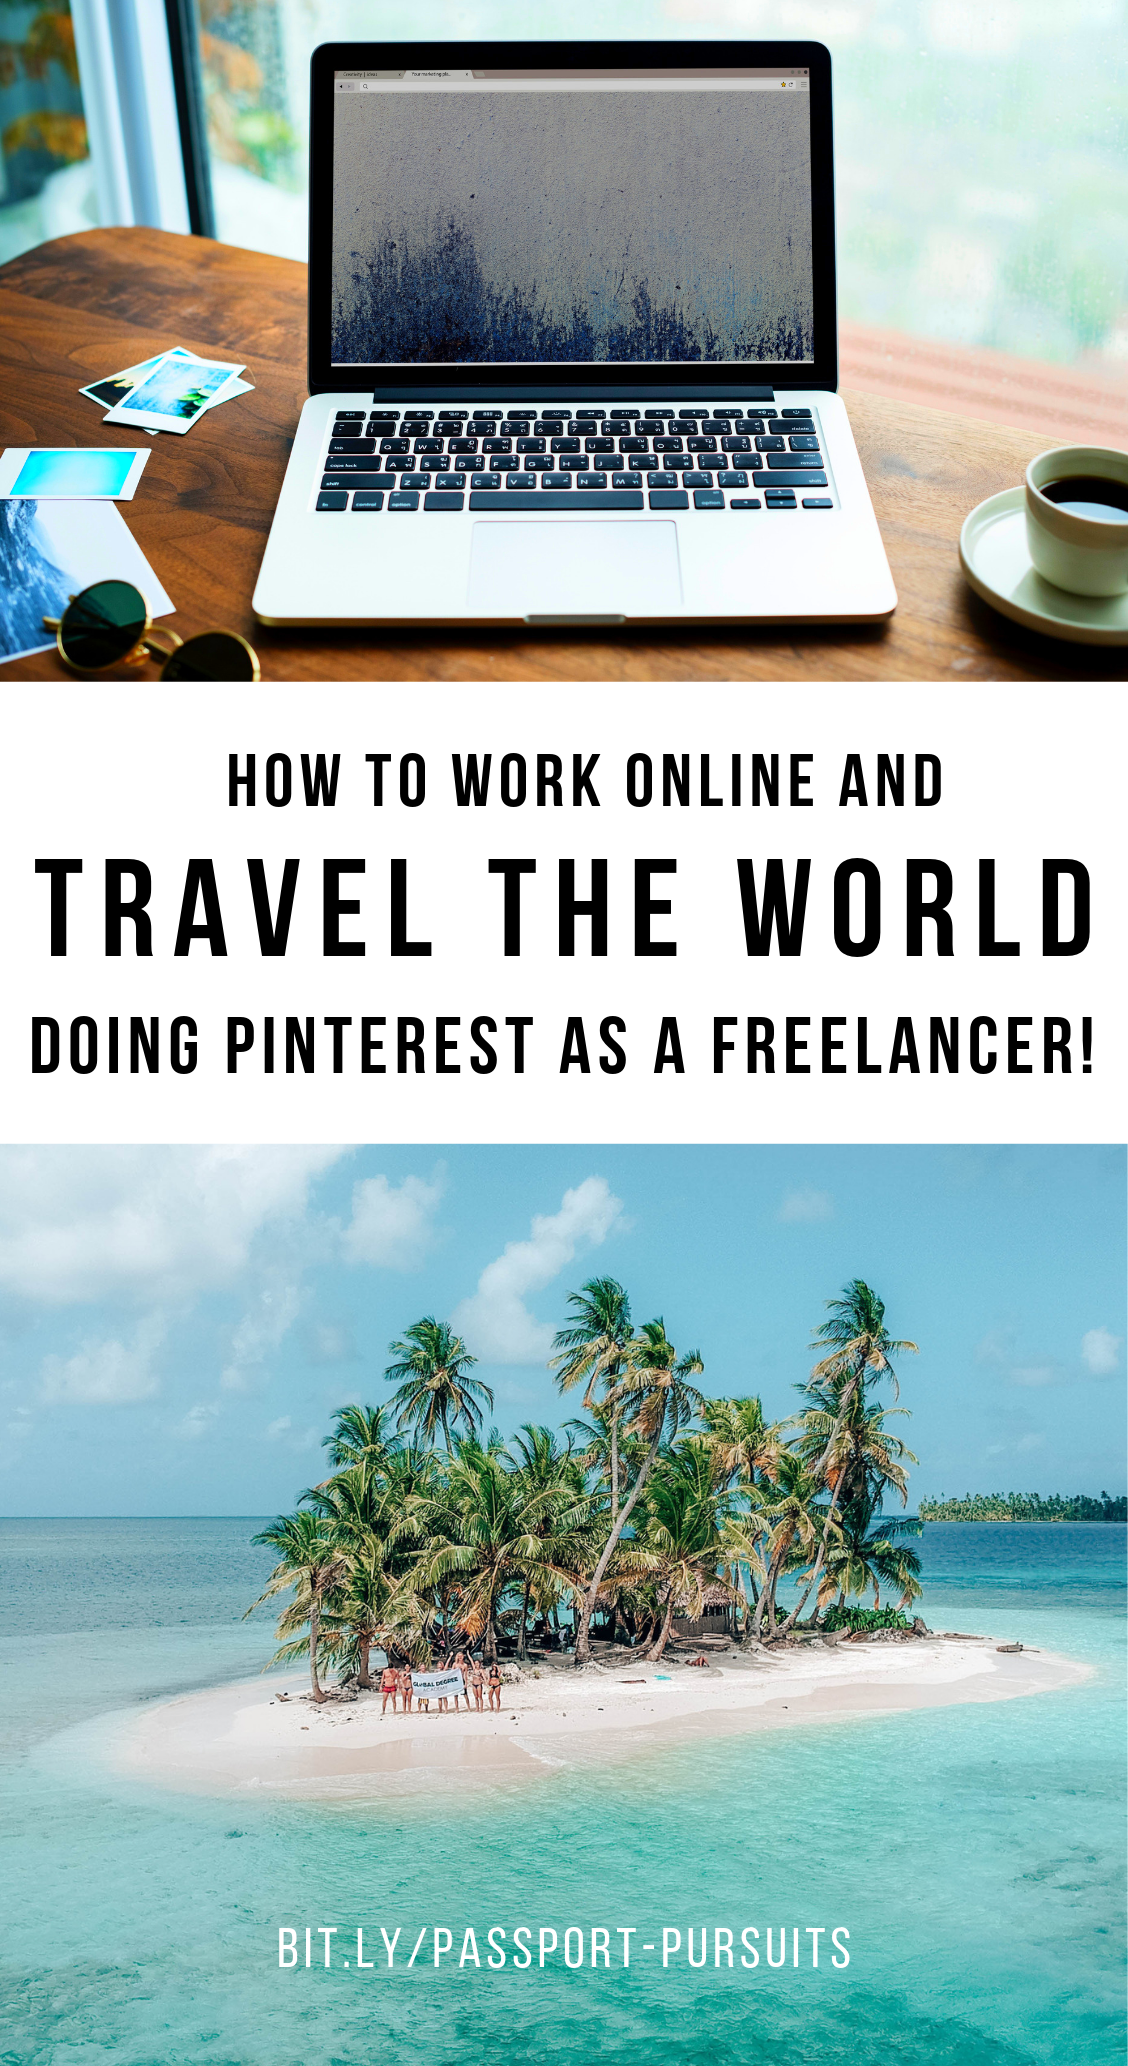 Ready to make this year the one you actually work online and travel the world? Freelancing is one of the BEST ways to get started, because it doesn't require you to launch a business, create products, or waste your time on methods that take a long time to turn a profit. This blog post goes over how to get started freelancing online, and links to a free masterclass about doing Pintererest as a freelancer! Click through to see! / goseekexplore.com #digitalnomad #workonline #travel #traveltips #workfromhome #freelance #freelancetips